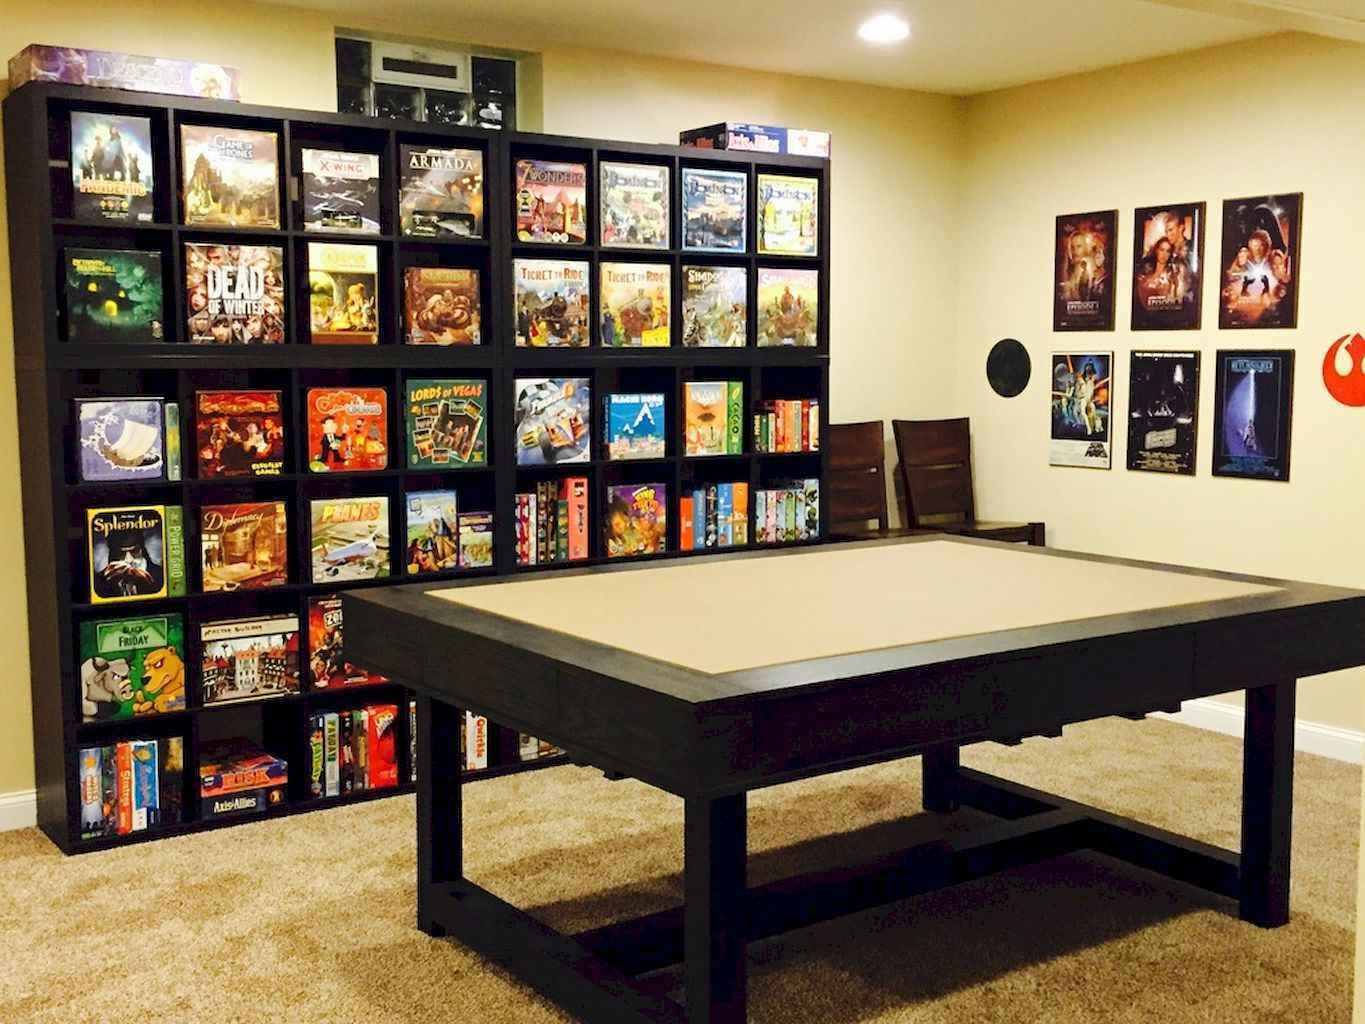 Gorgeous 20 Awesome Diy Game Room Design Ideas Https Livingmarch Com 20 Diy Game Room Ideas Game Room Furniture Game Room Family Game Room Decor